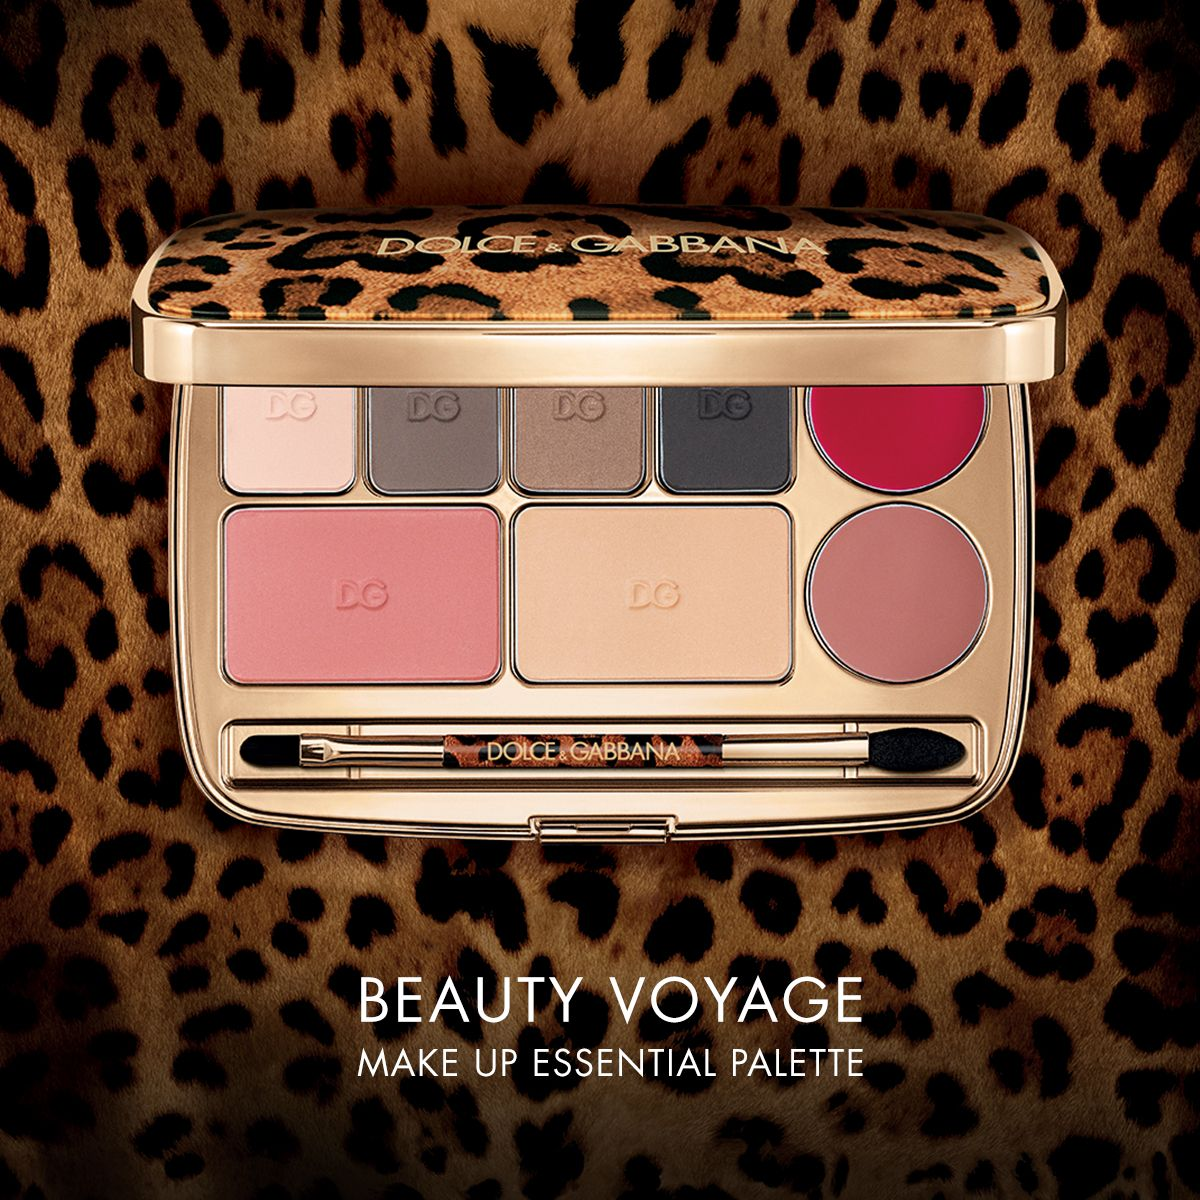 Beauty Voyage Is The New Dolce Gabbana Make Up Palette Bringing Beauty Looks To The Palm Of Your Hand Perfect For Your Handbag This Exquisite Gilded Kosmetika